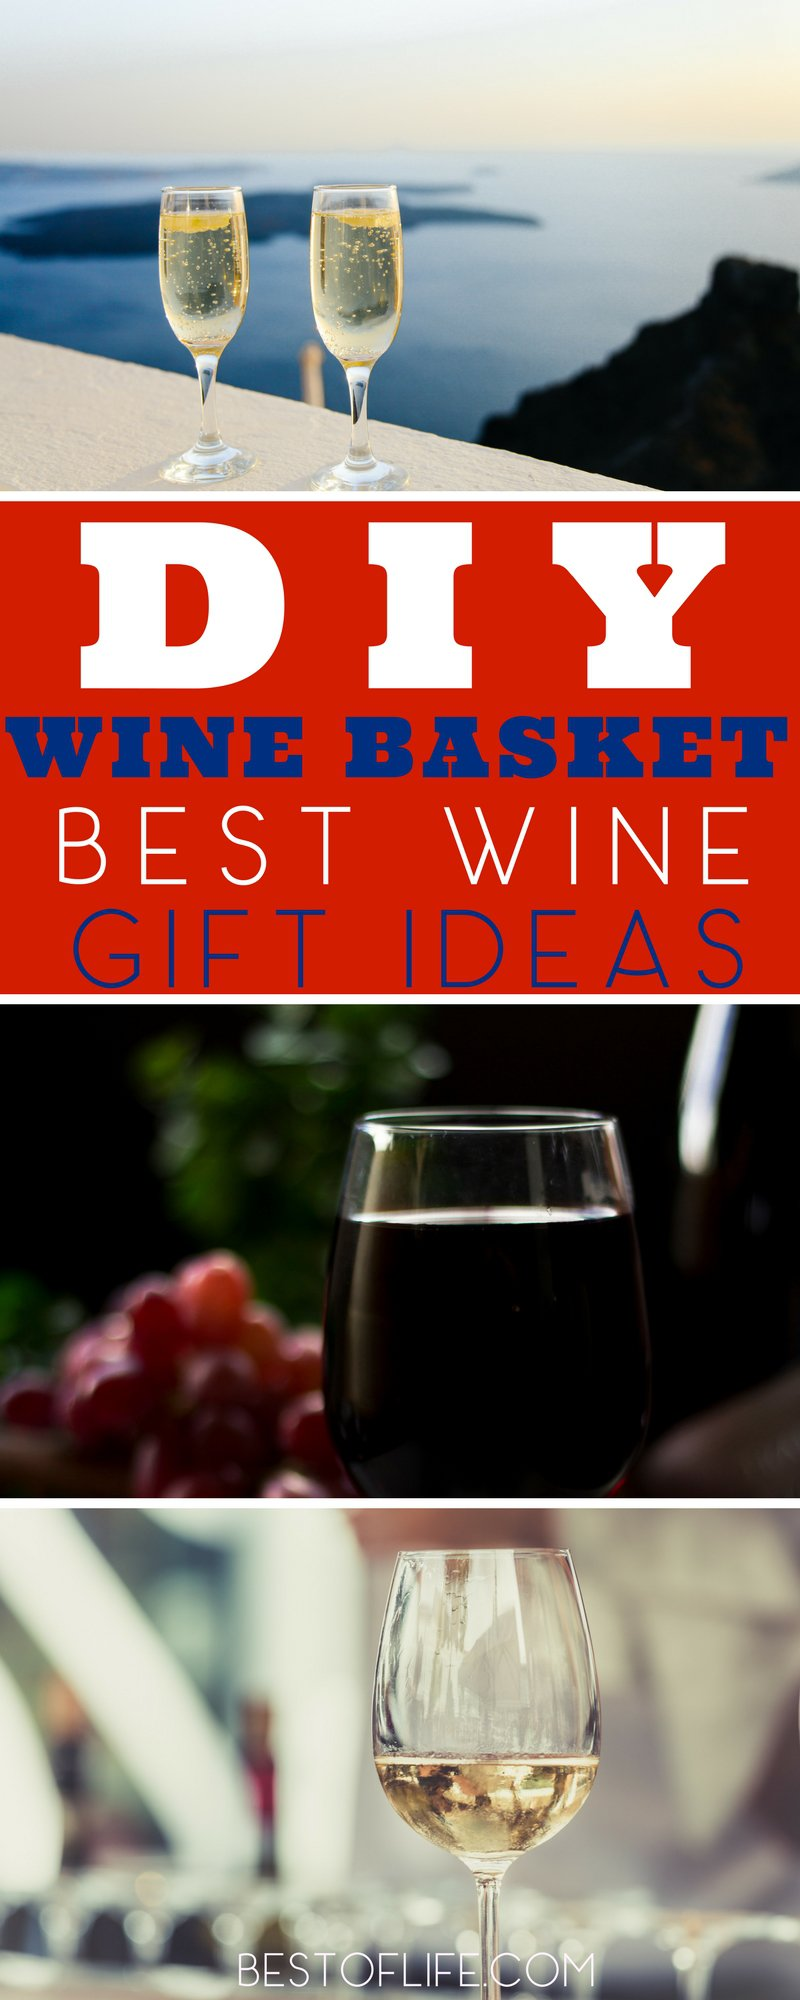 Best wine gifts to give diy wine basket ideas the best for Best wine gift ideas